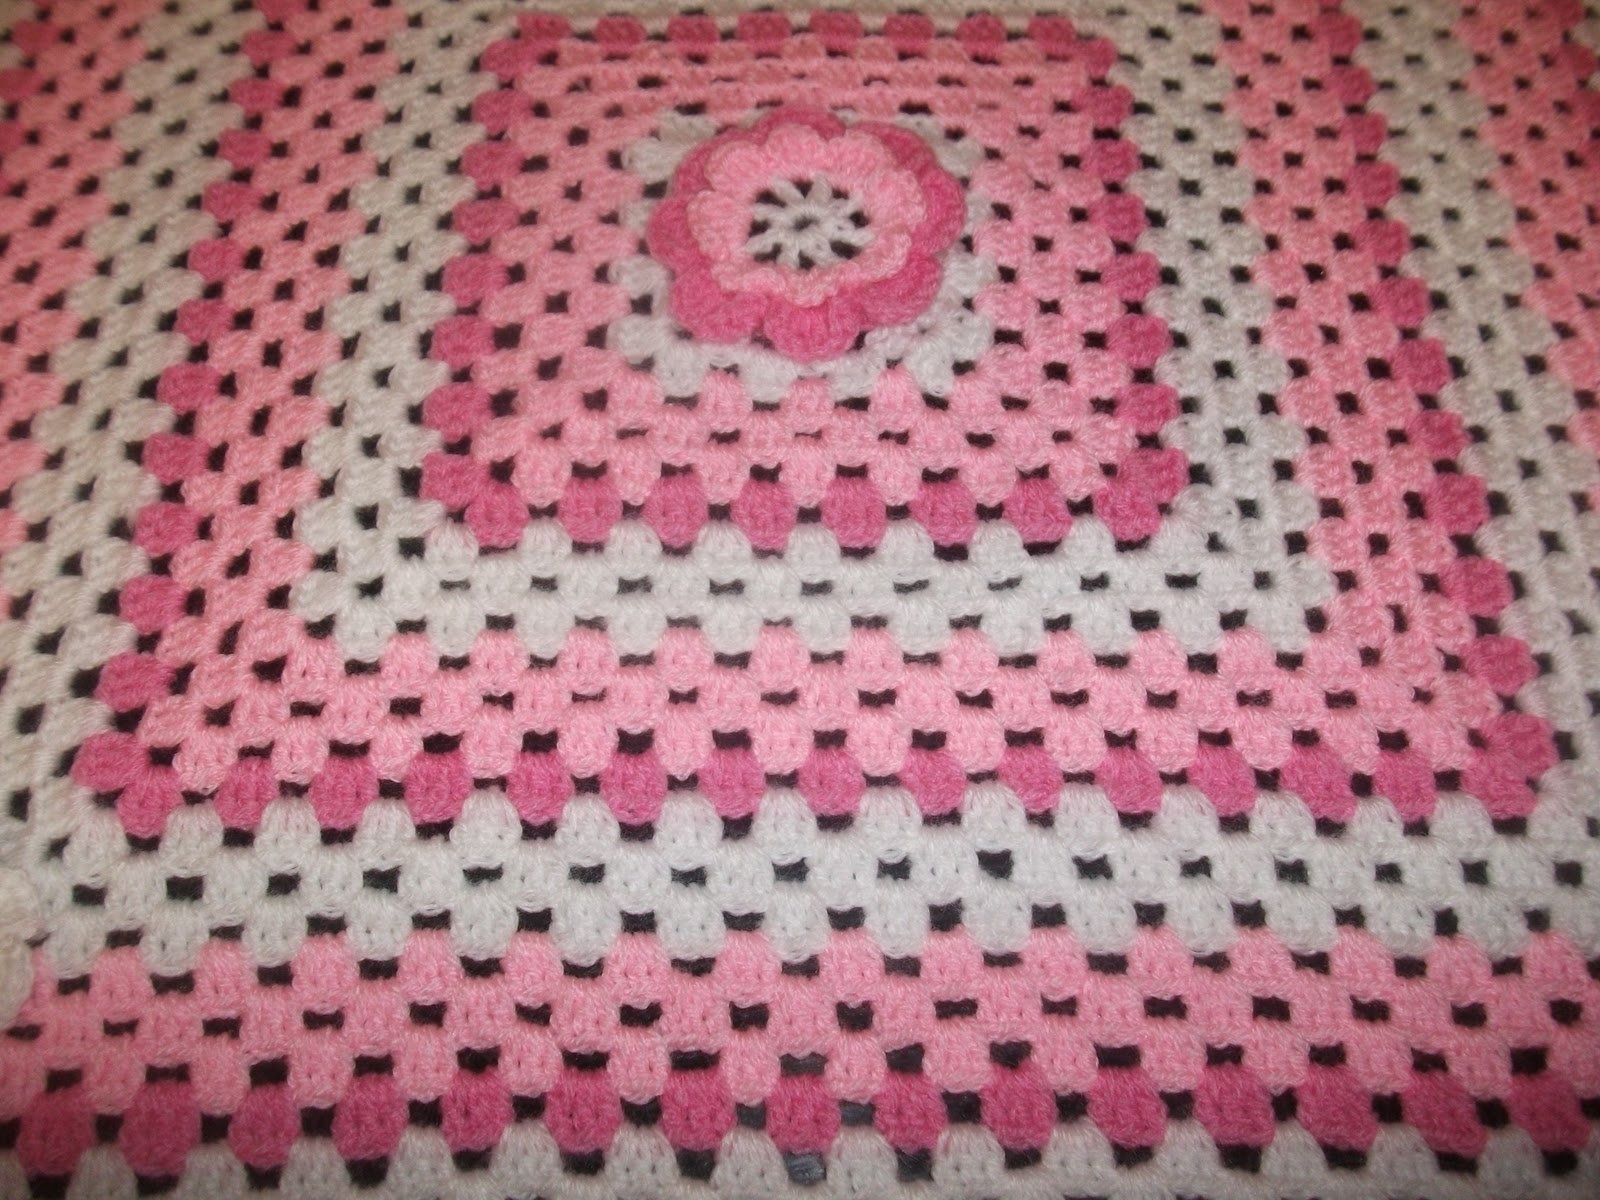 Crochet Patterns For Beginners Baby Blankets : Beginner Crochet Baby Blankets ? Crochet Club